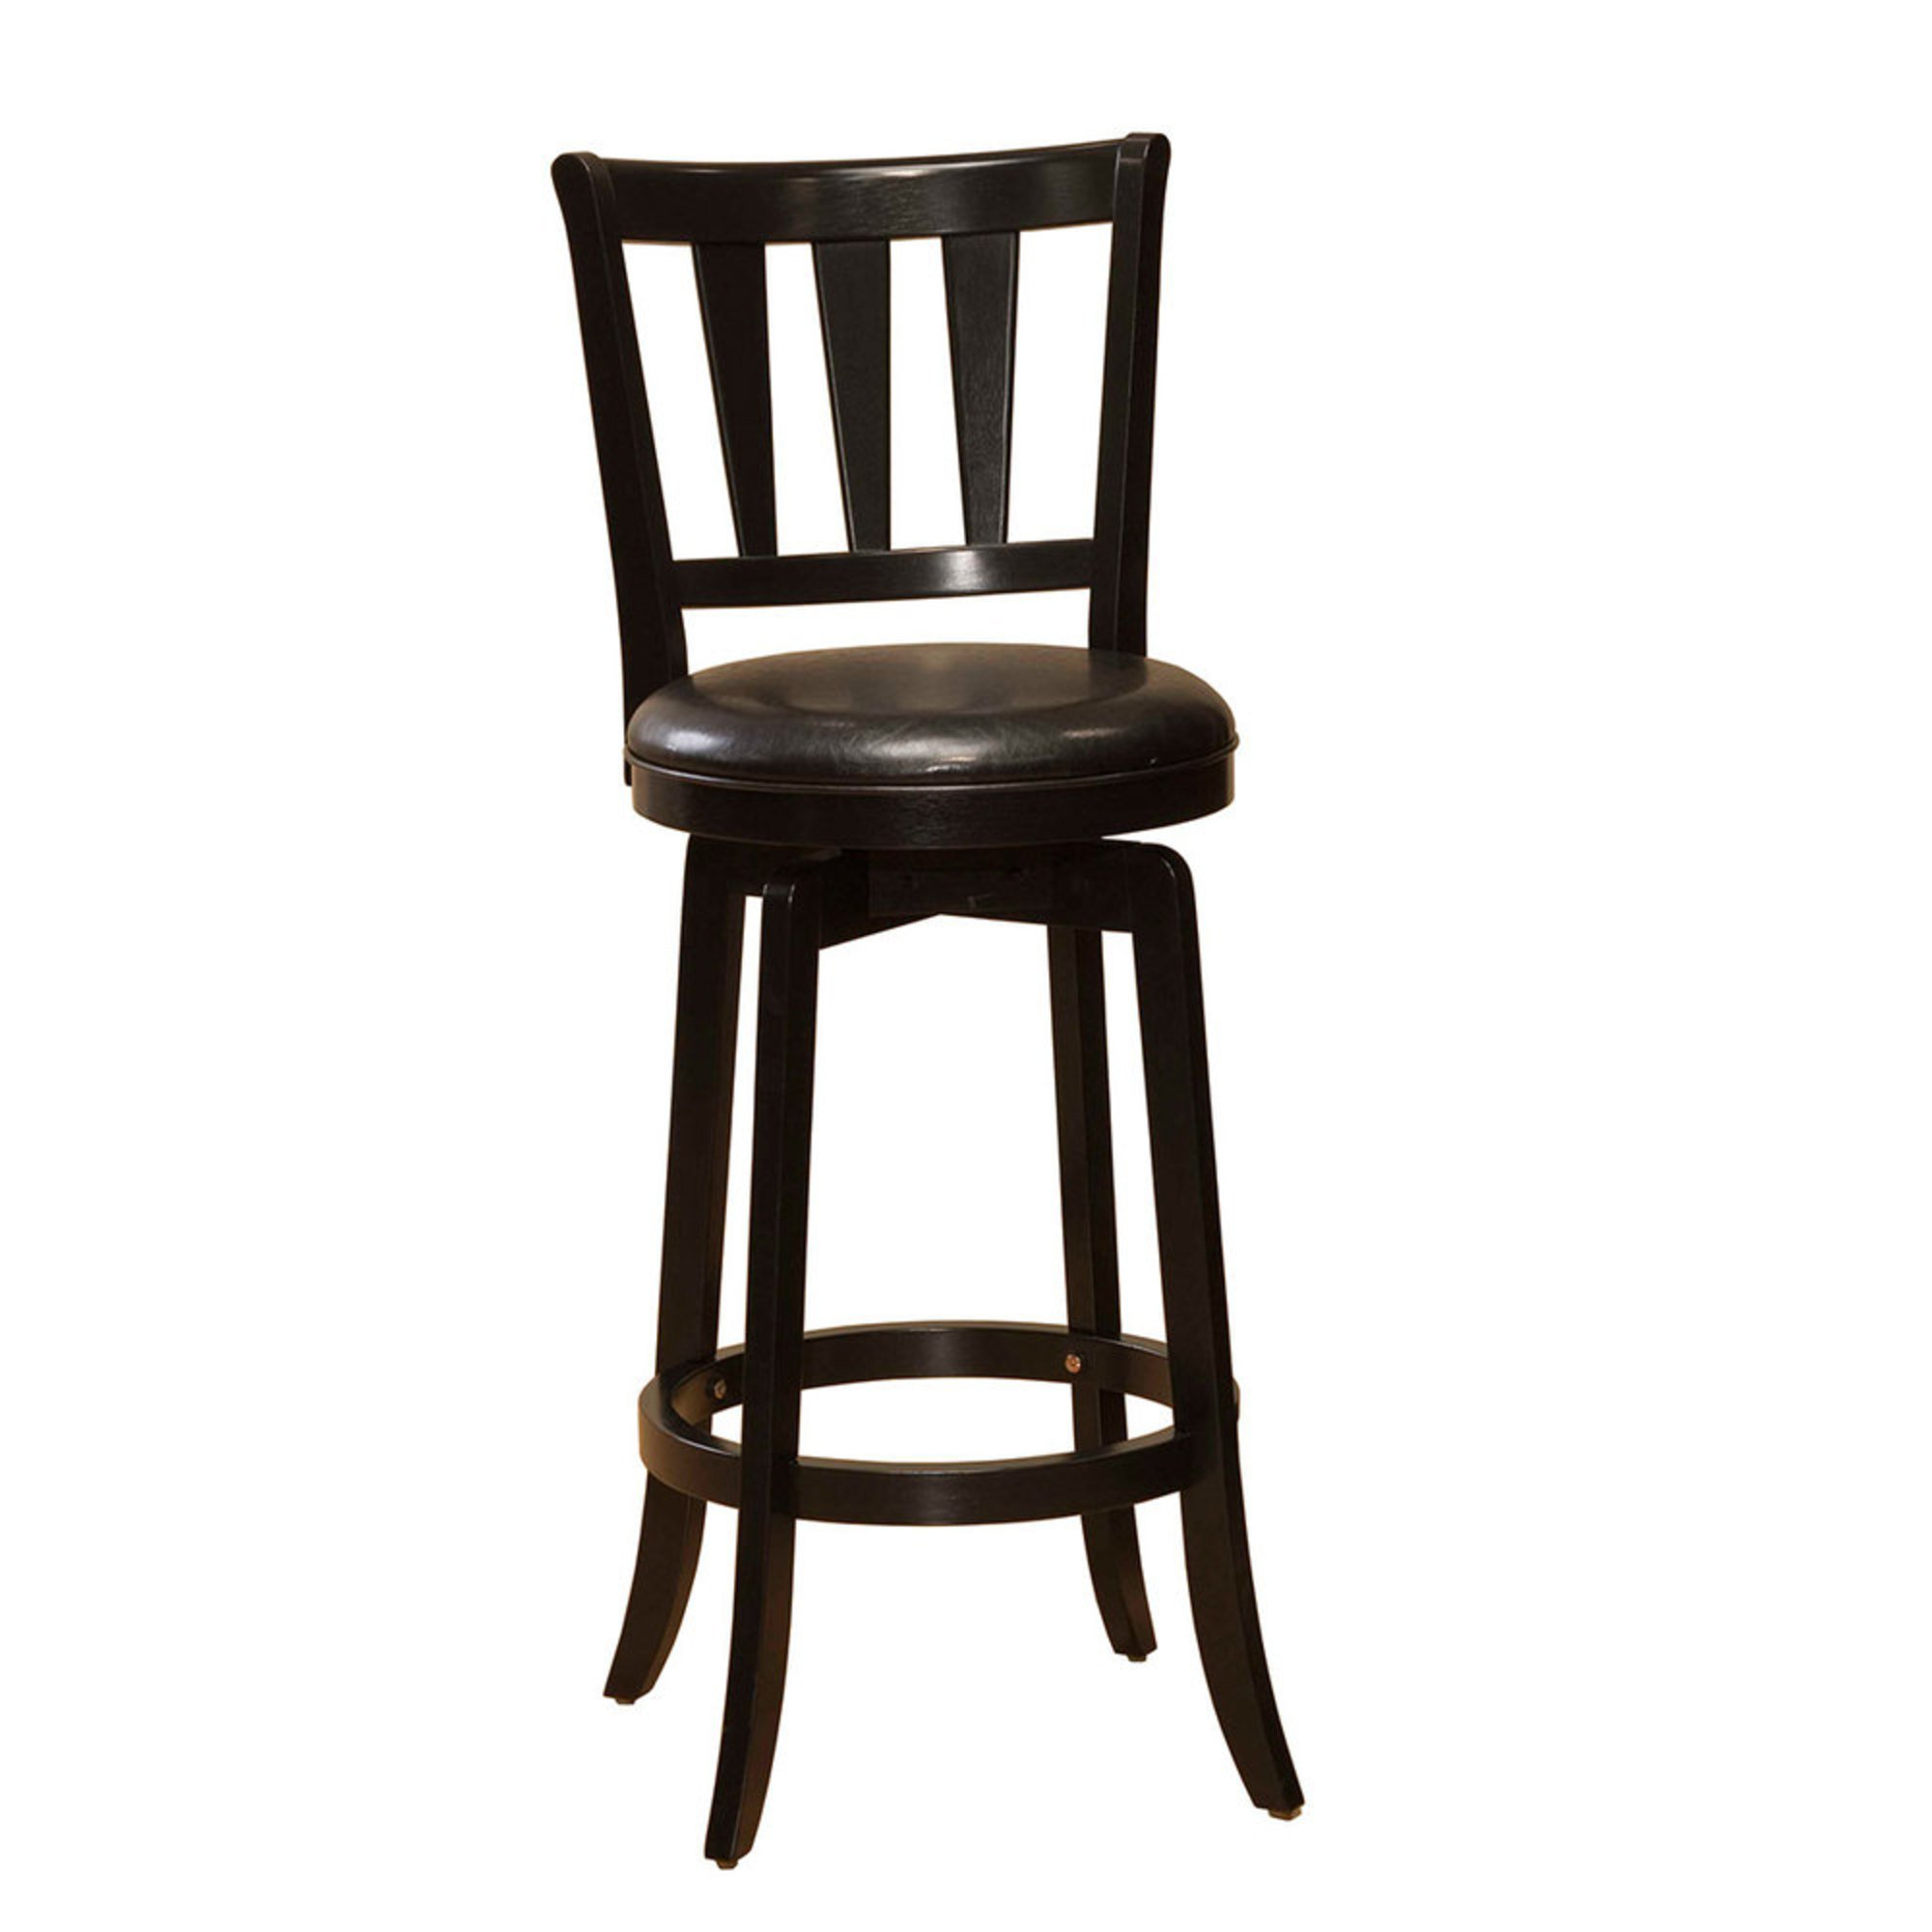 Presque Isle Swivel Black Bar Stool Search Results Parent Category Shop Your Navy